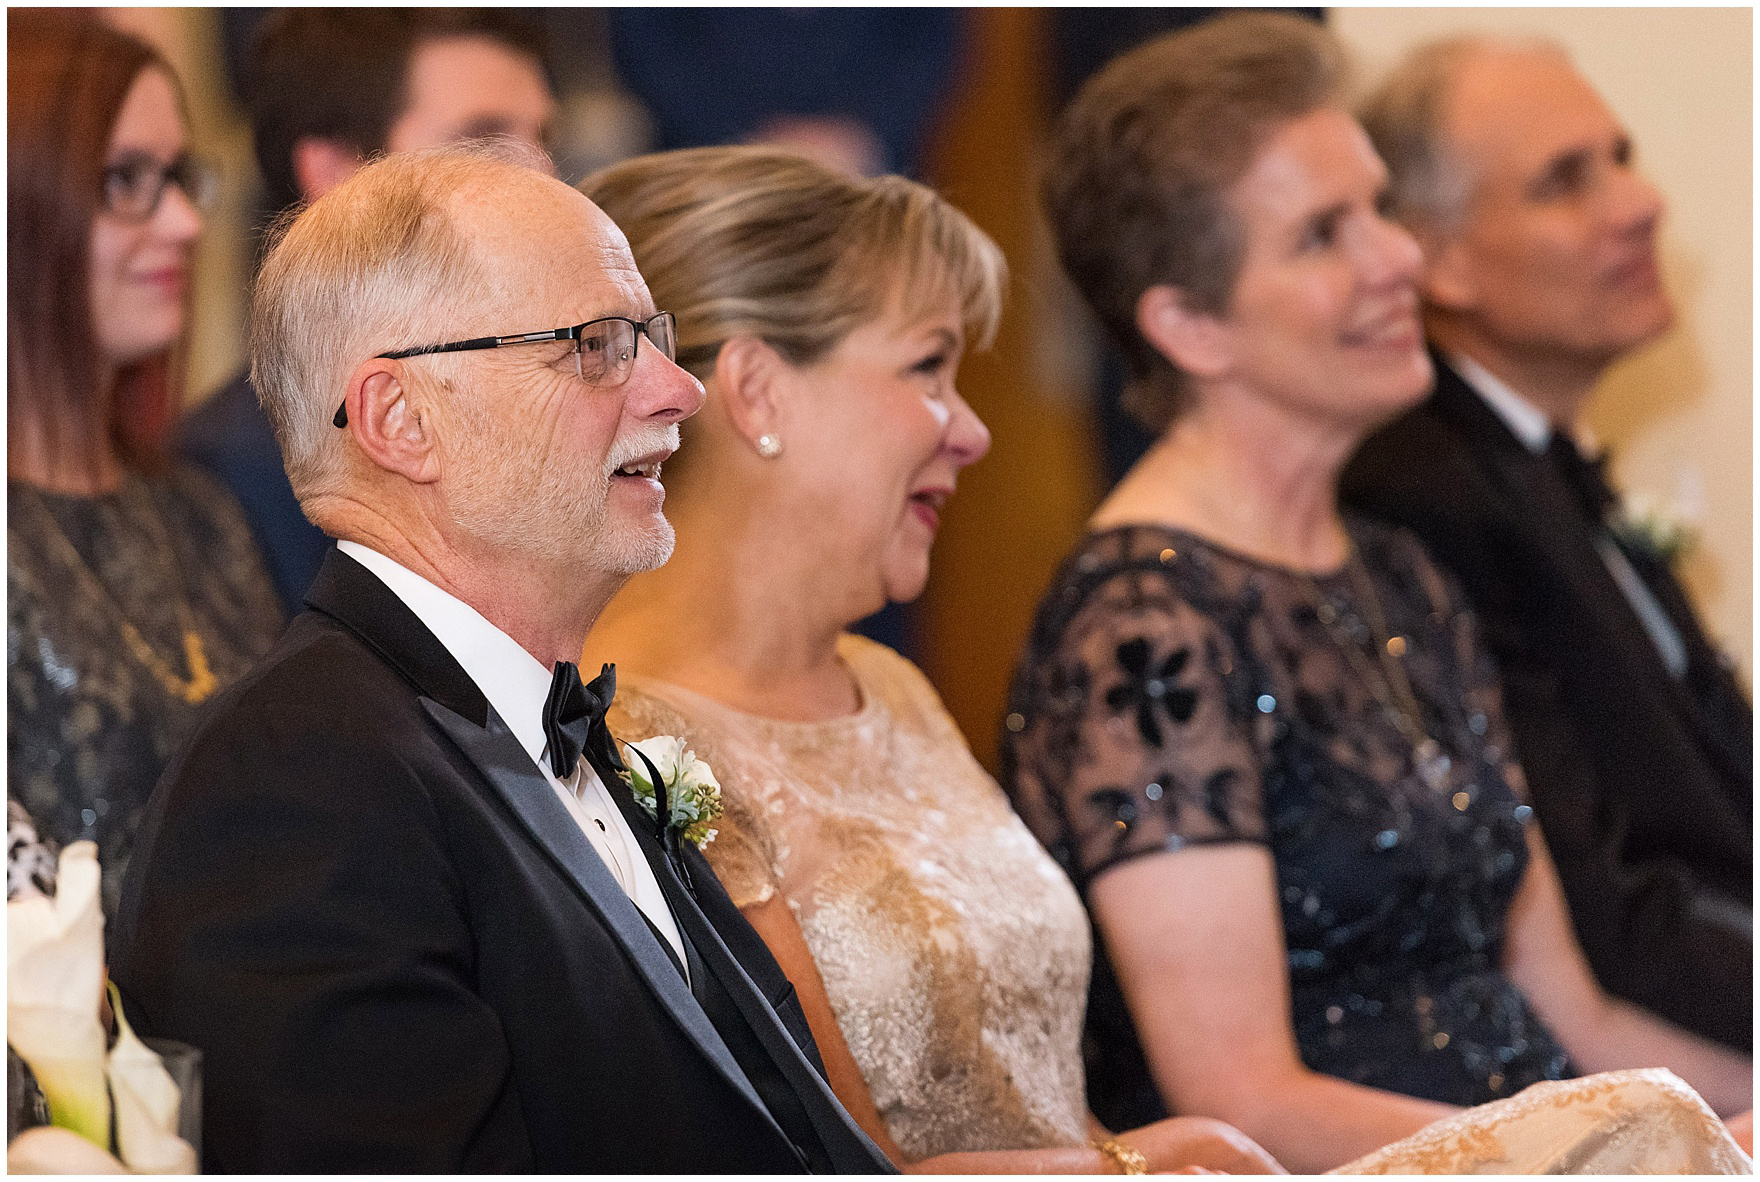 The bride's family laughs during a Newberry Library Chicago wedding.